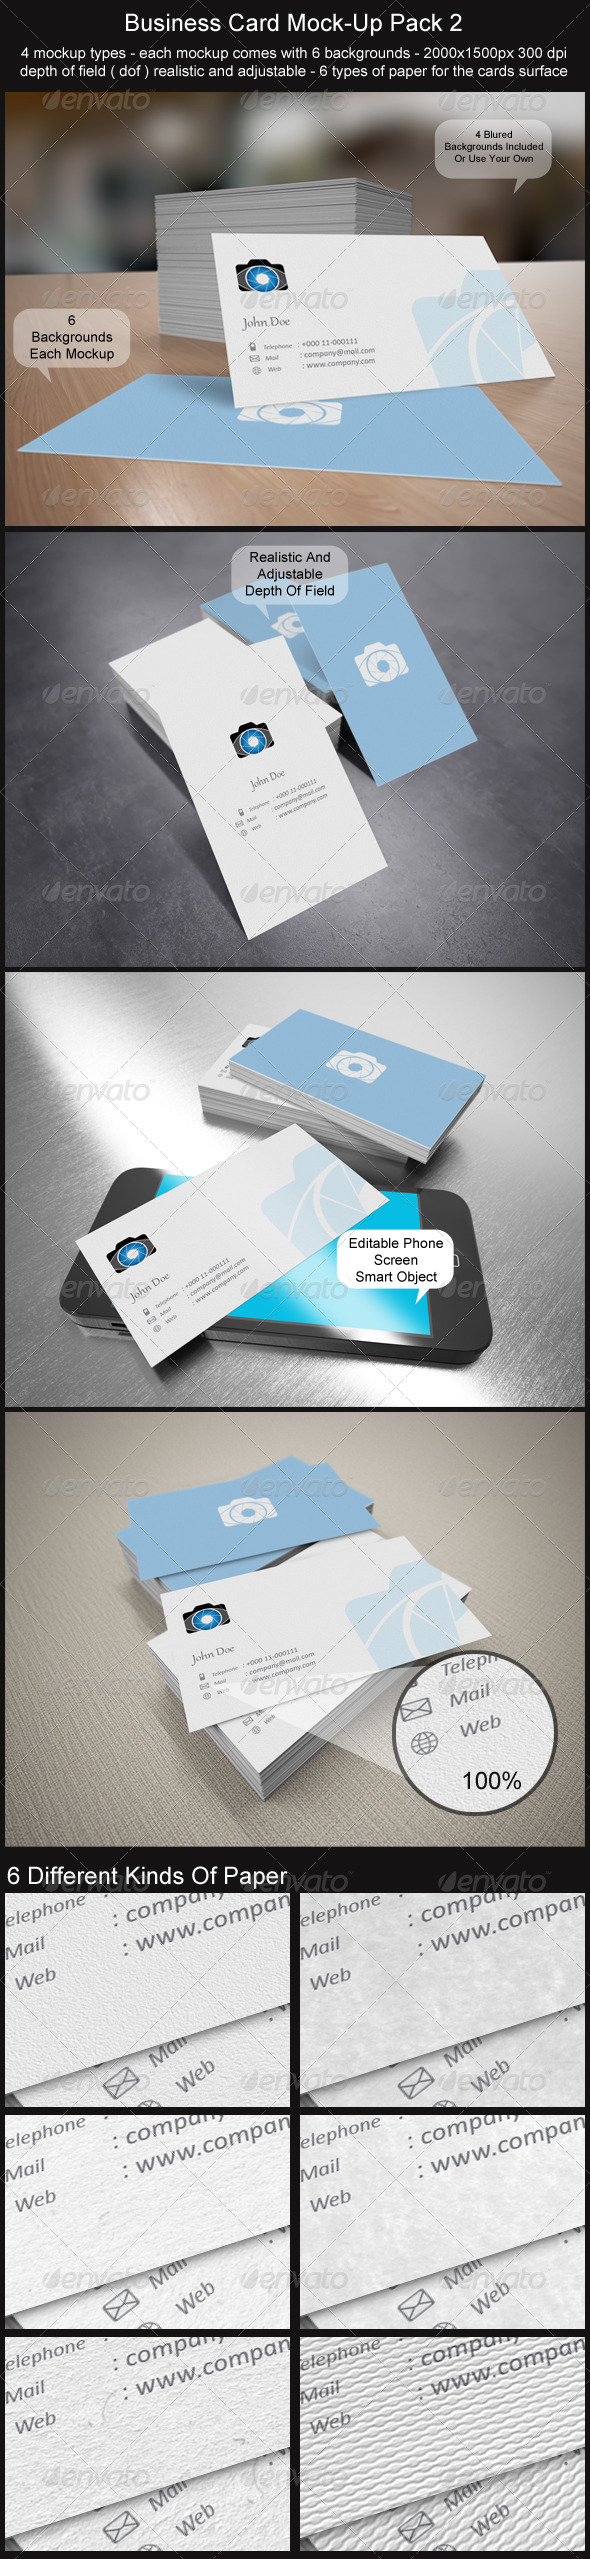 GraphicRiver Business Card Mock-Up Pack 2 3500961